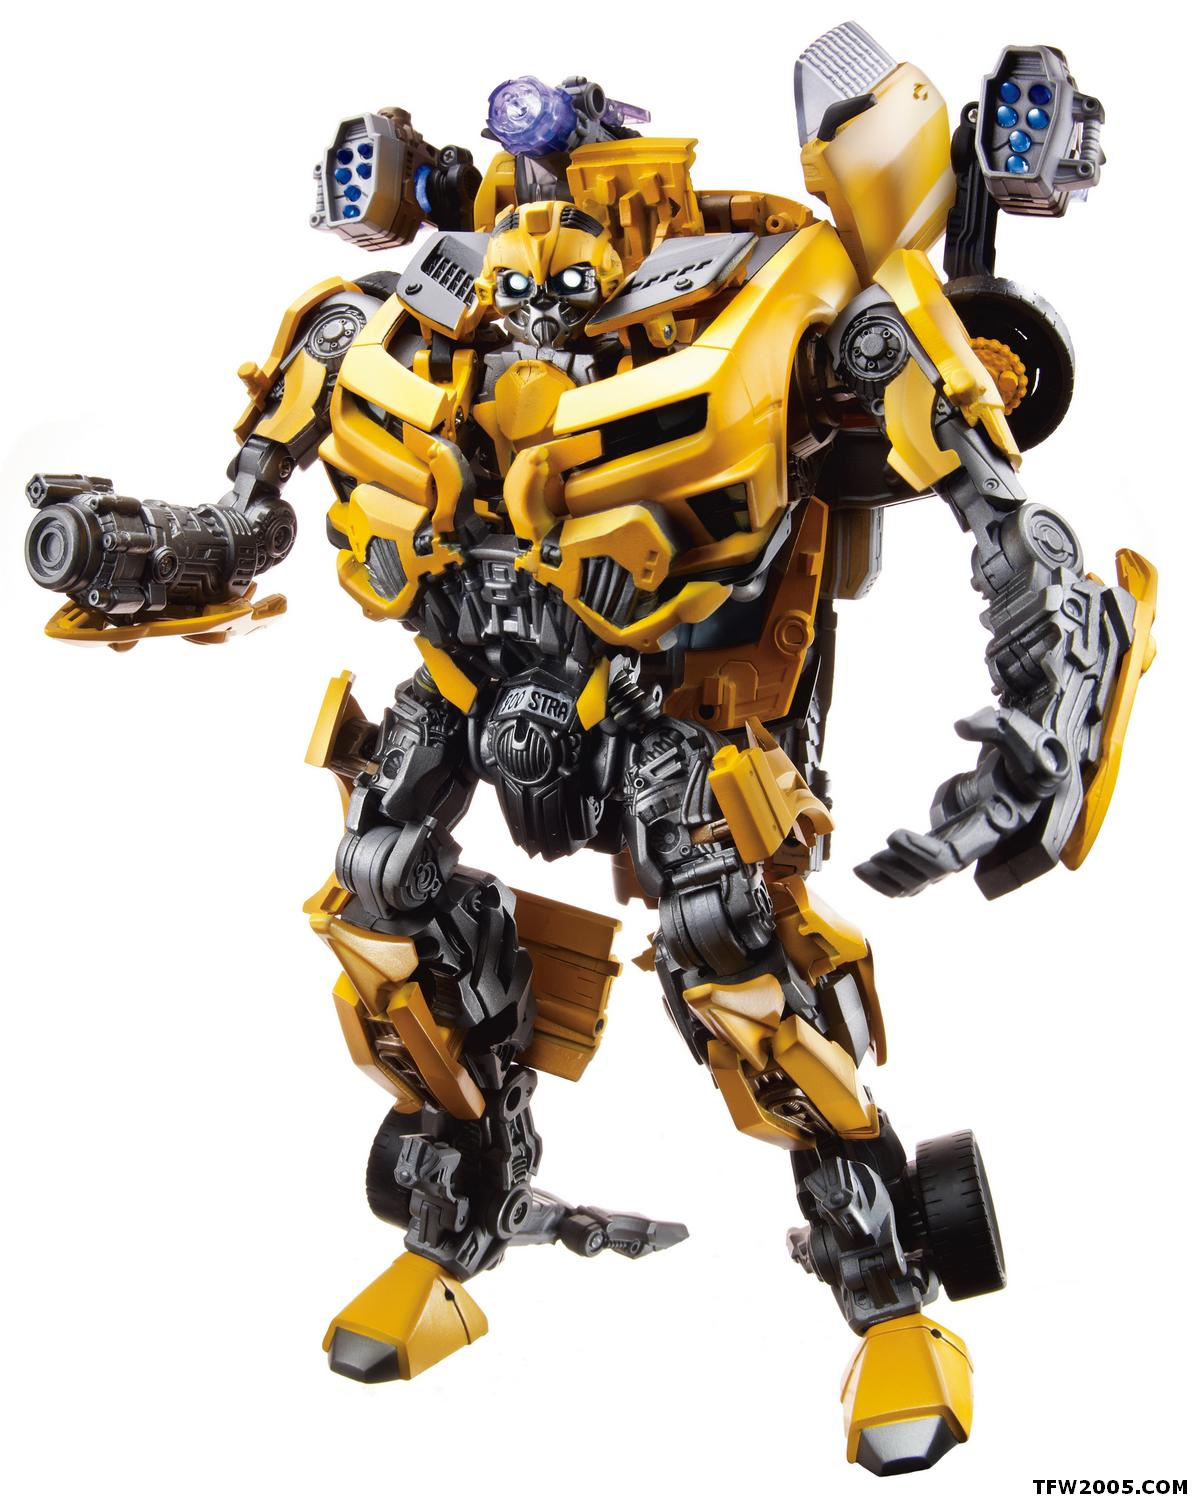 Best Transformers Toys And Action Figures : Dark of the moon leader bumblebee becomes best boys